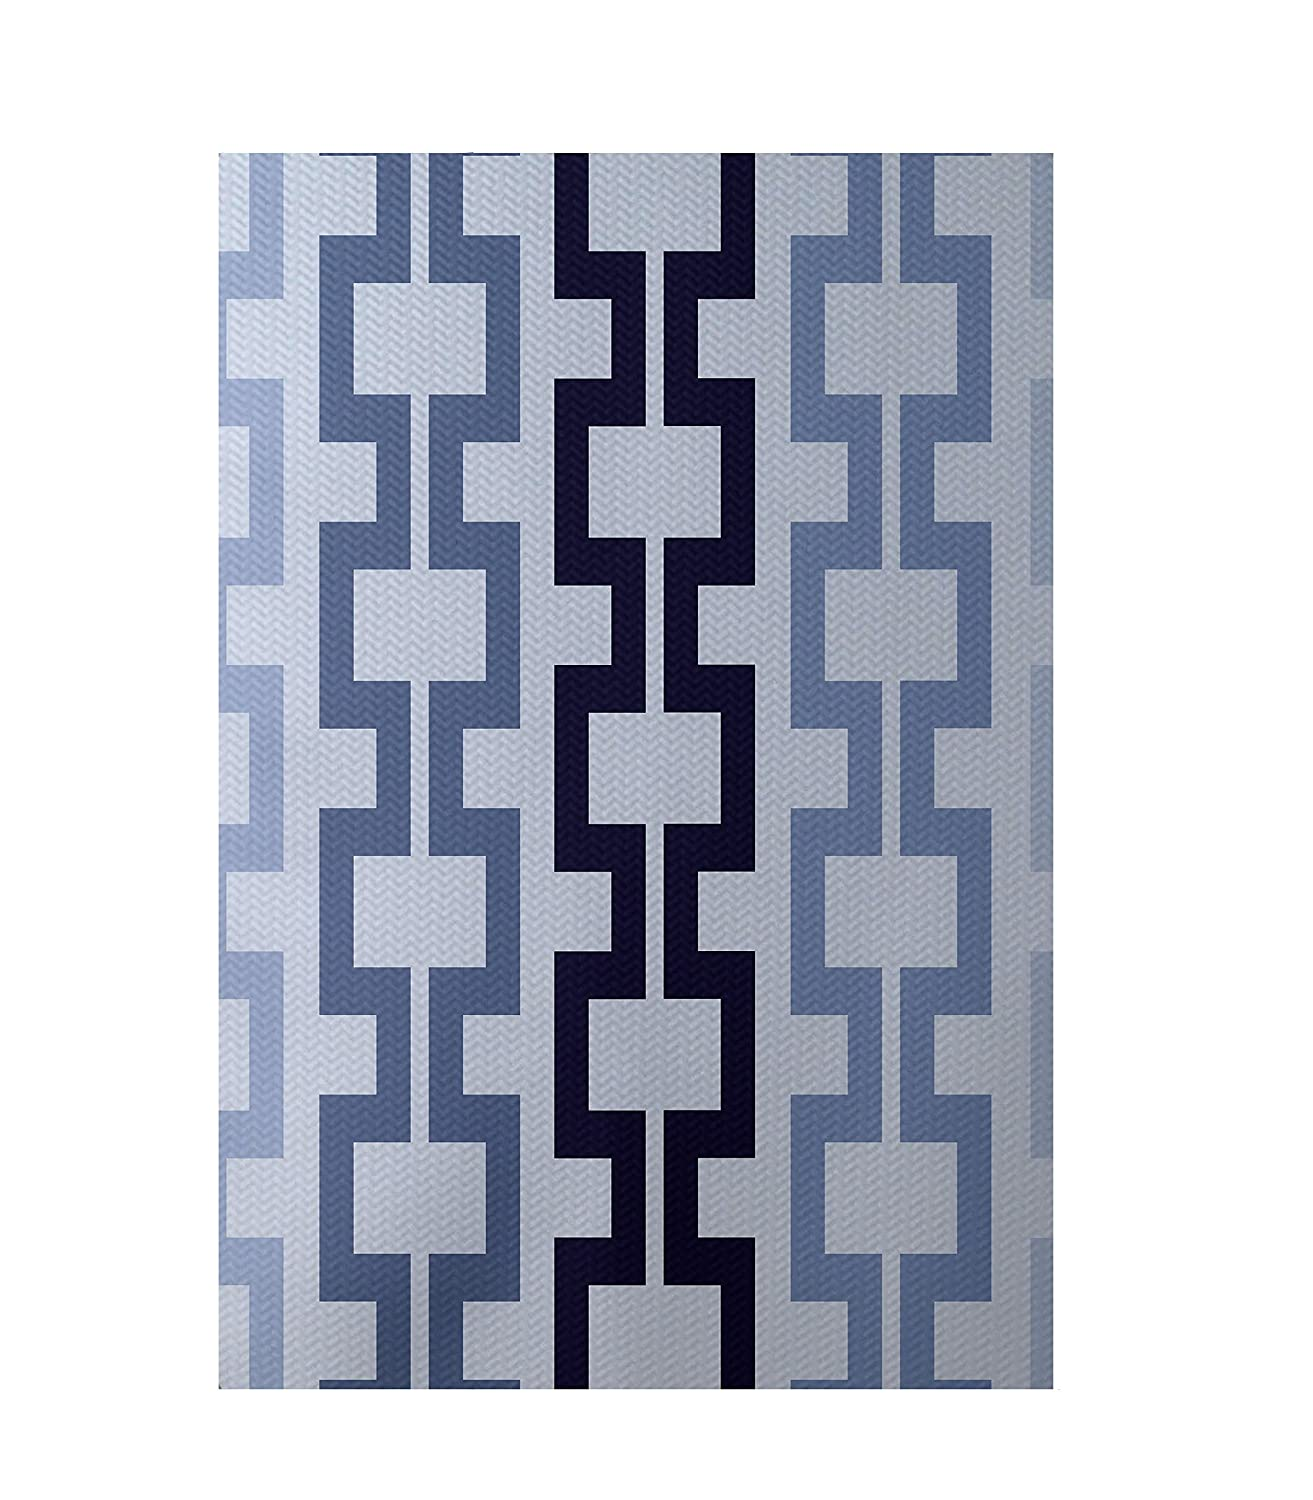 Bewitching E by design RGN123BL31BL14-23 Cuff-Links Geometric Print Indoor//Outdoor Rug